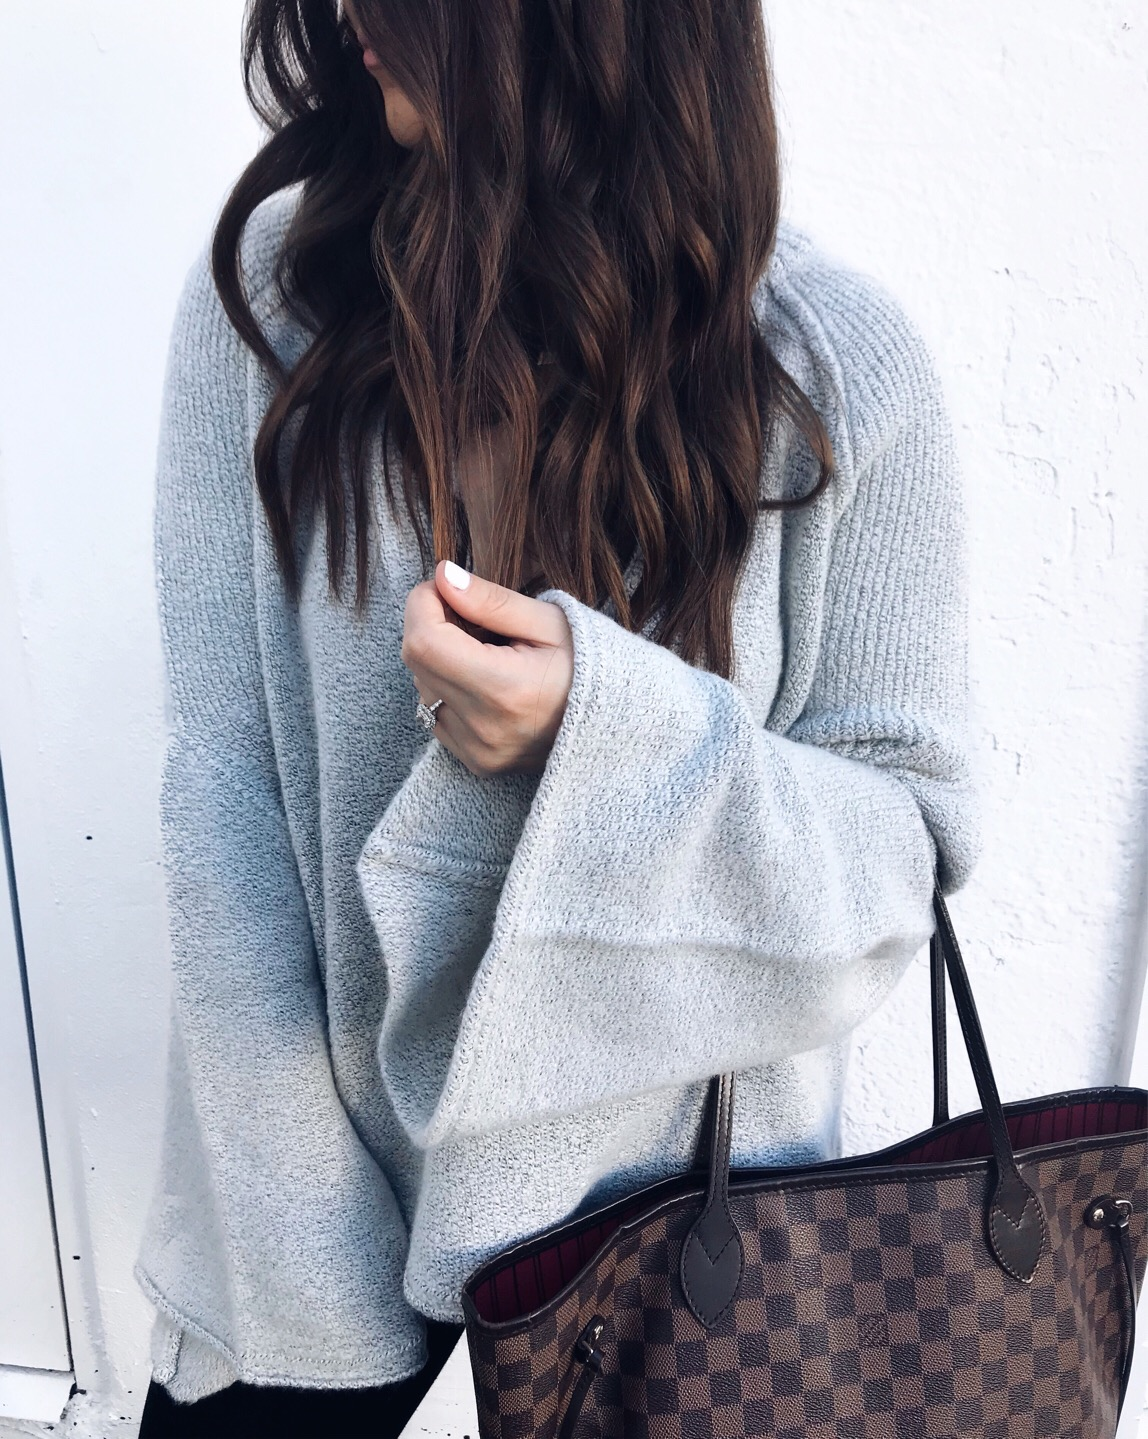 fall fashion / fall outfit idea / fall outfit inspiration / fall feels / fall vibes / bell sleeve sweater / cozy sweater